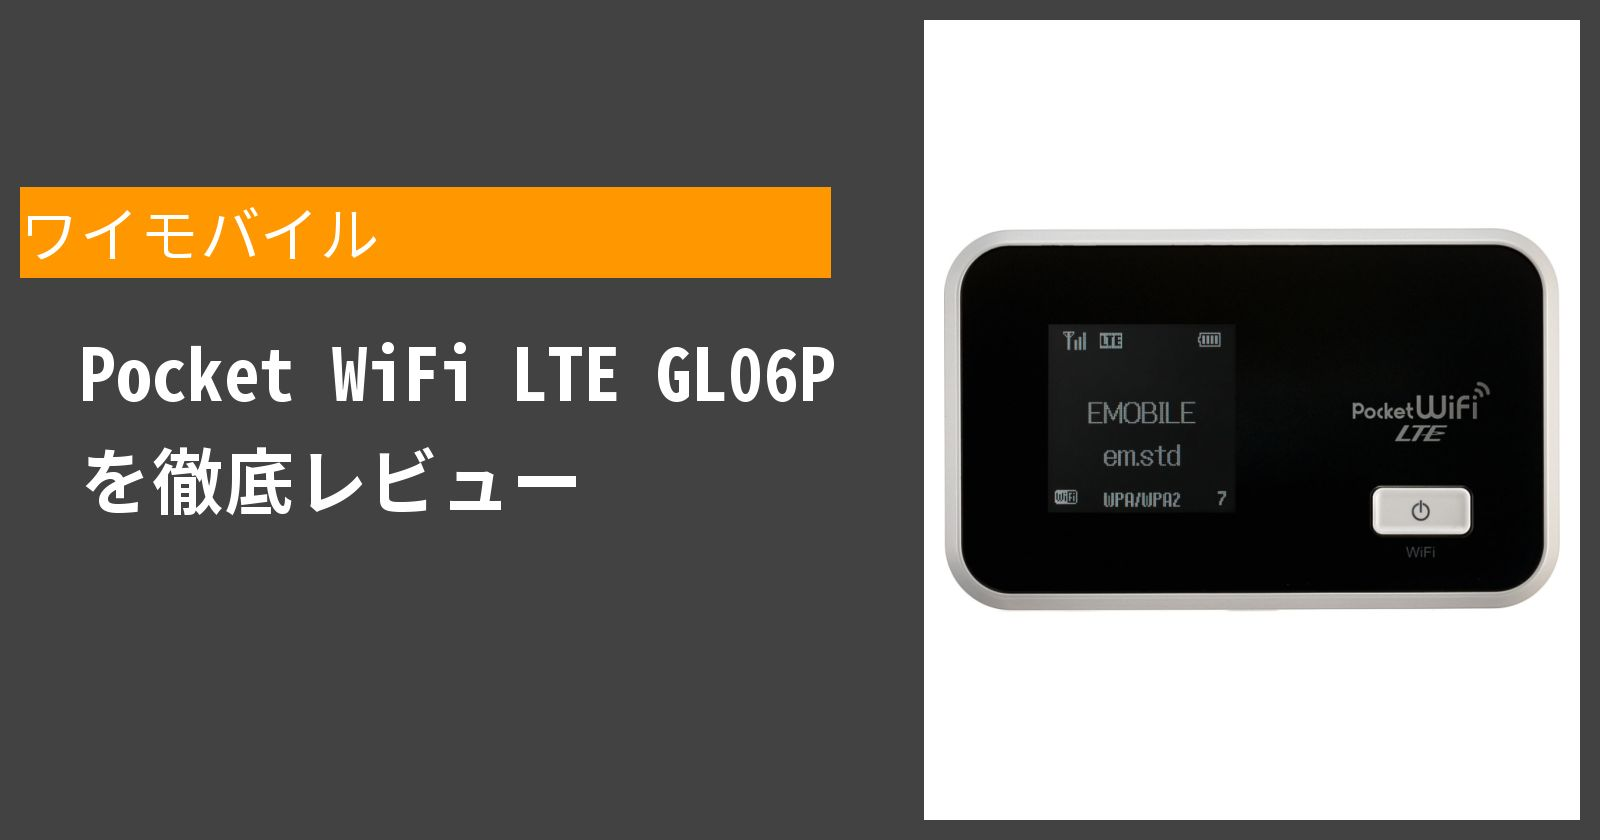 Pocket WiFi LTE GL06Pを徹底評価